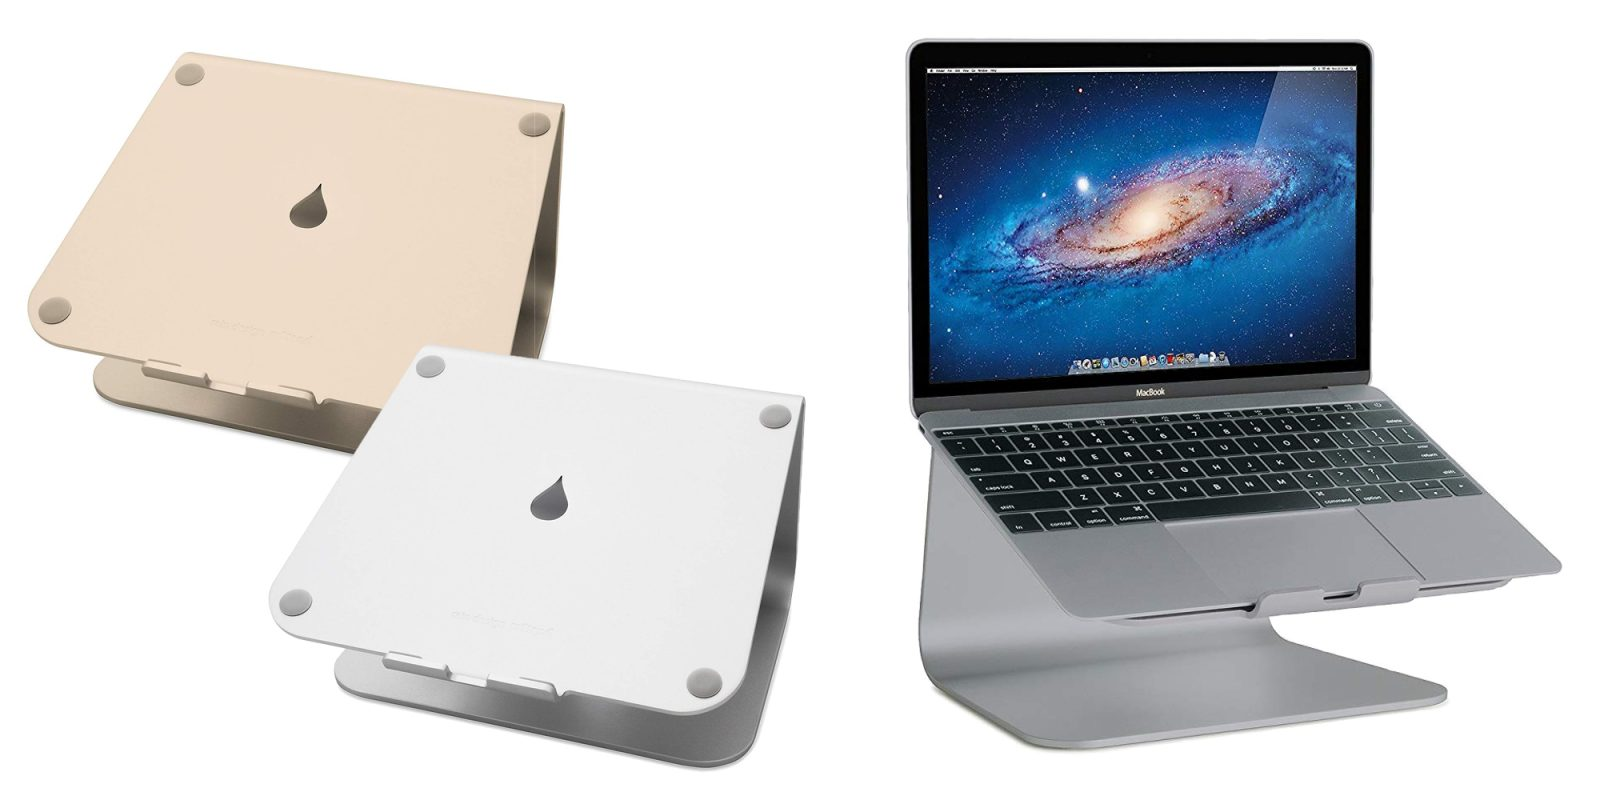 Rain Design Mstand Macbook.Rain Design S Mstand Macbook Stand Drops To 40 Shipped In